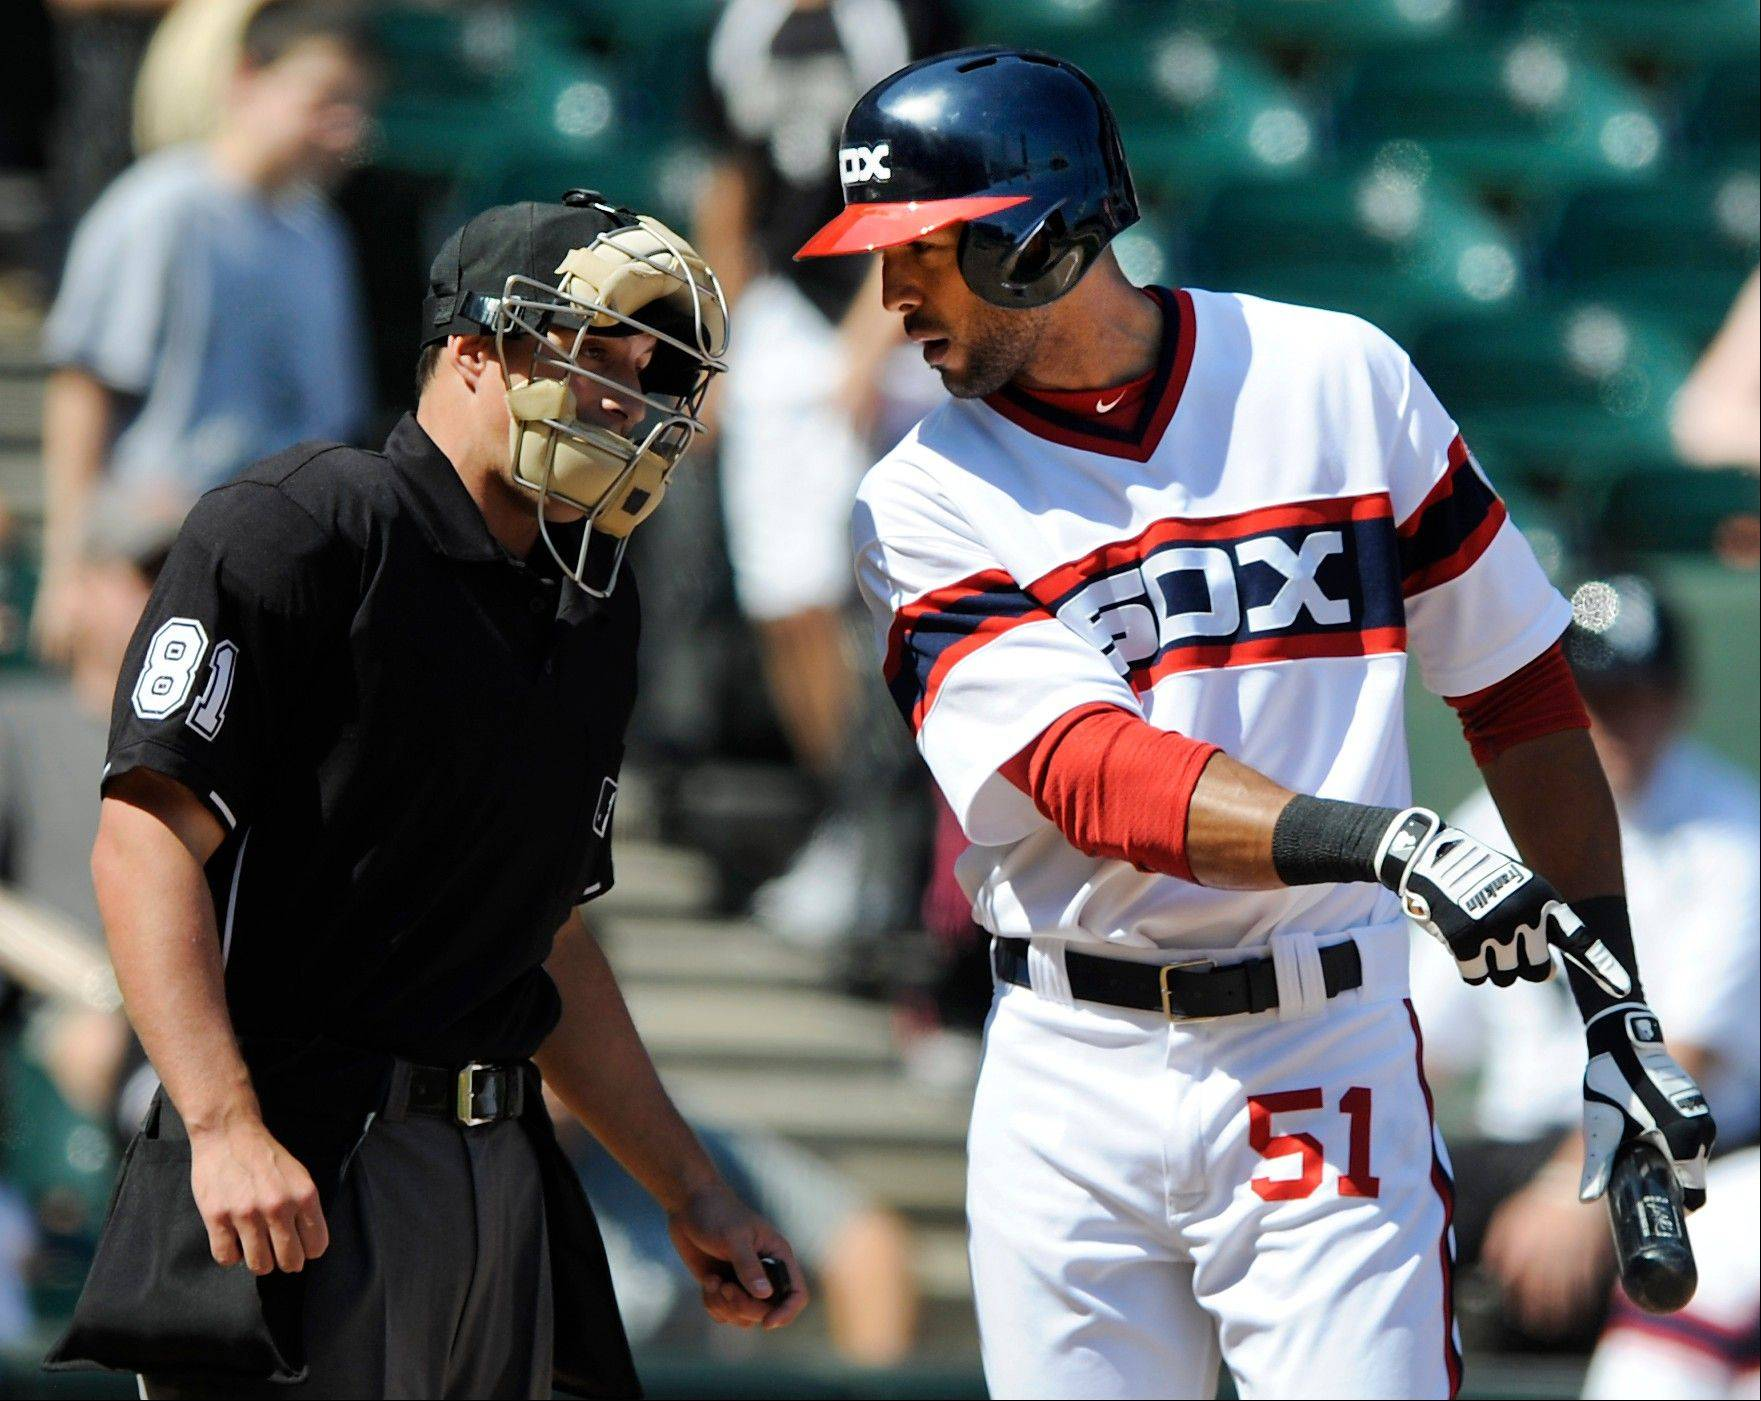 Losses, rumors continue to mount for White Sox